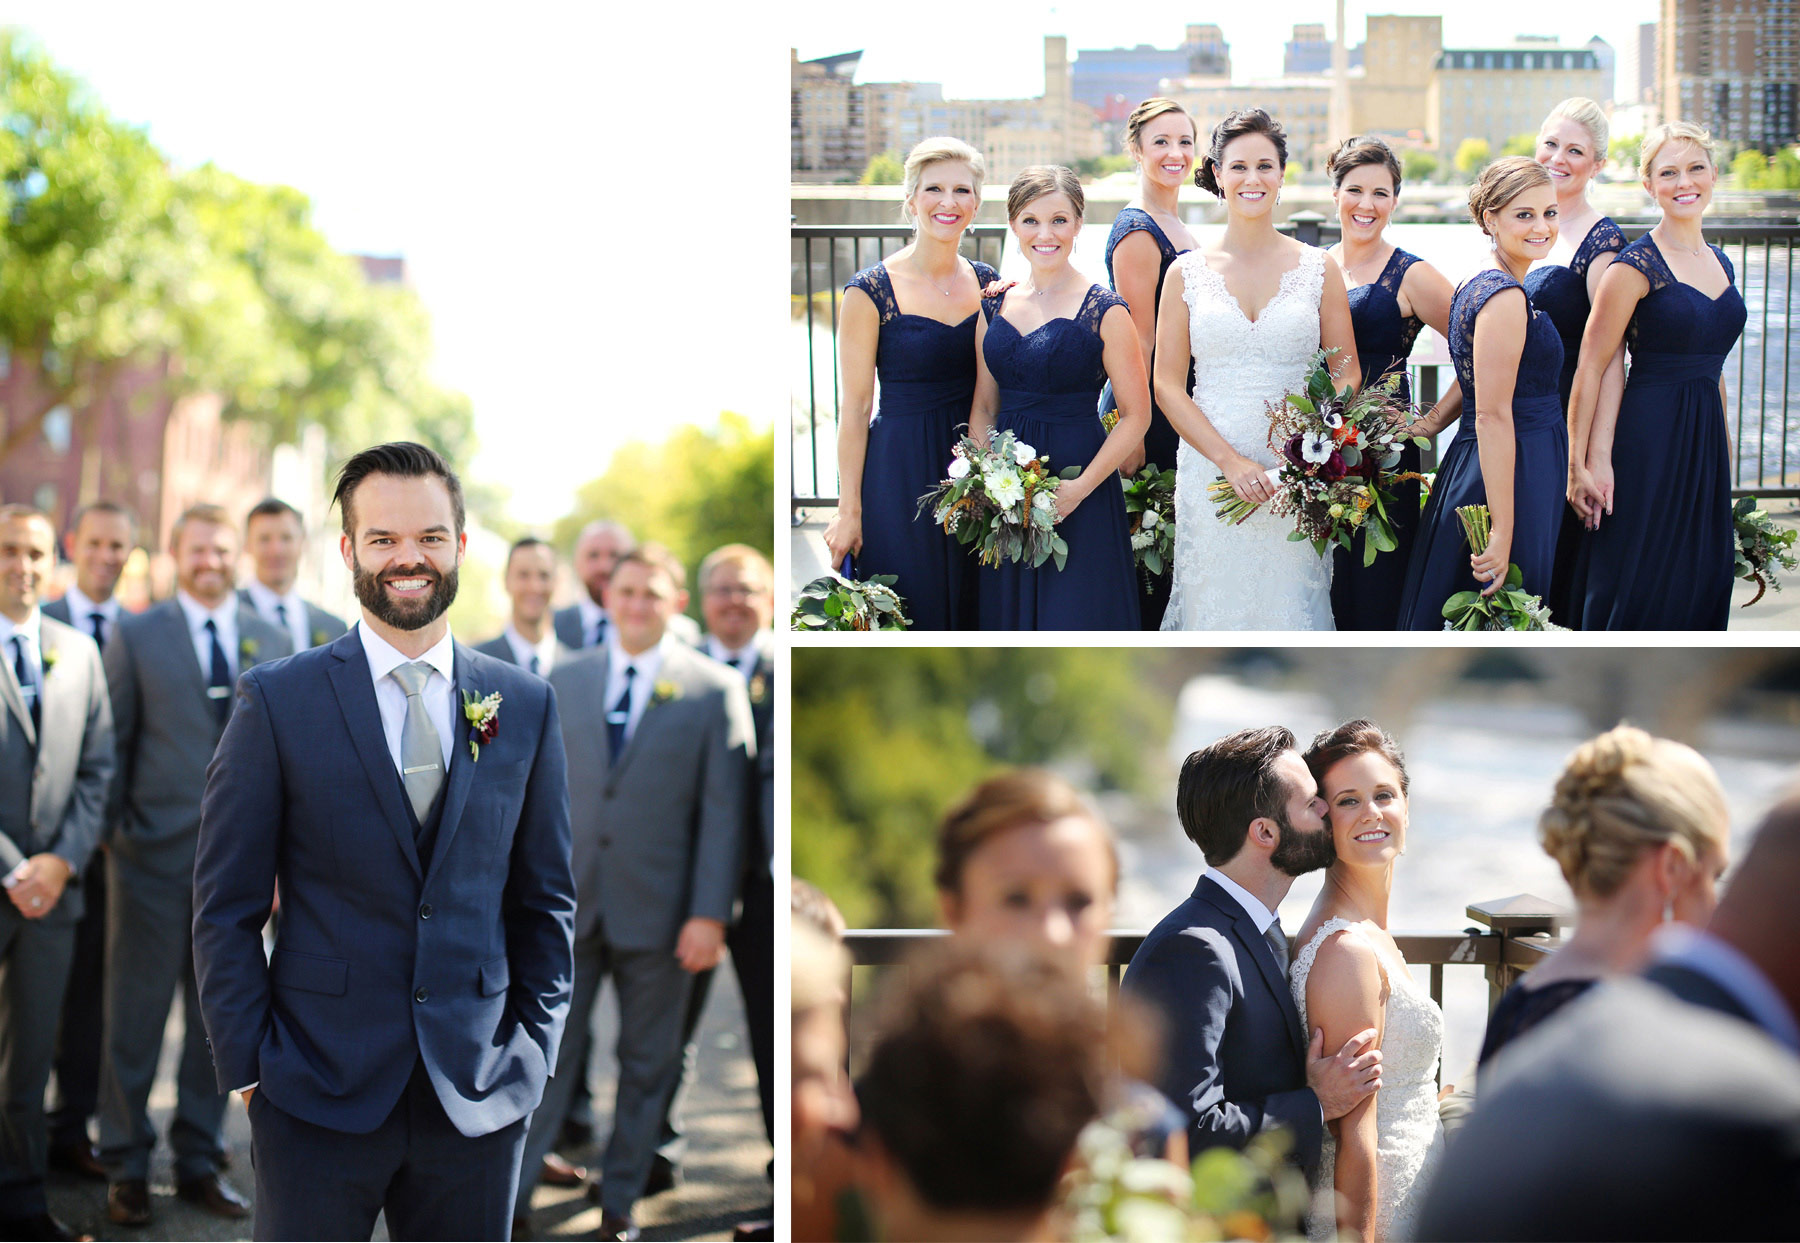 10-Minneapolis-Minnesota-Wedding-Photographer-by-Andrew-Vick-Photography-Summer-First-Meeting-Look-Bride-Groom-Bridal-Party-Bridesmaids-Groomsmen-Mississippi-River-Kiss-Flowers-Ashley-and-Eric.jpg